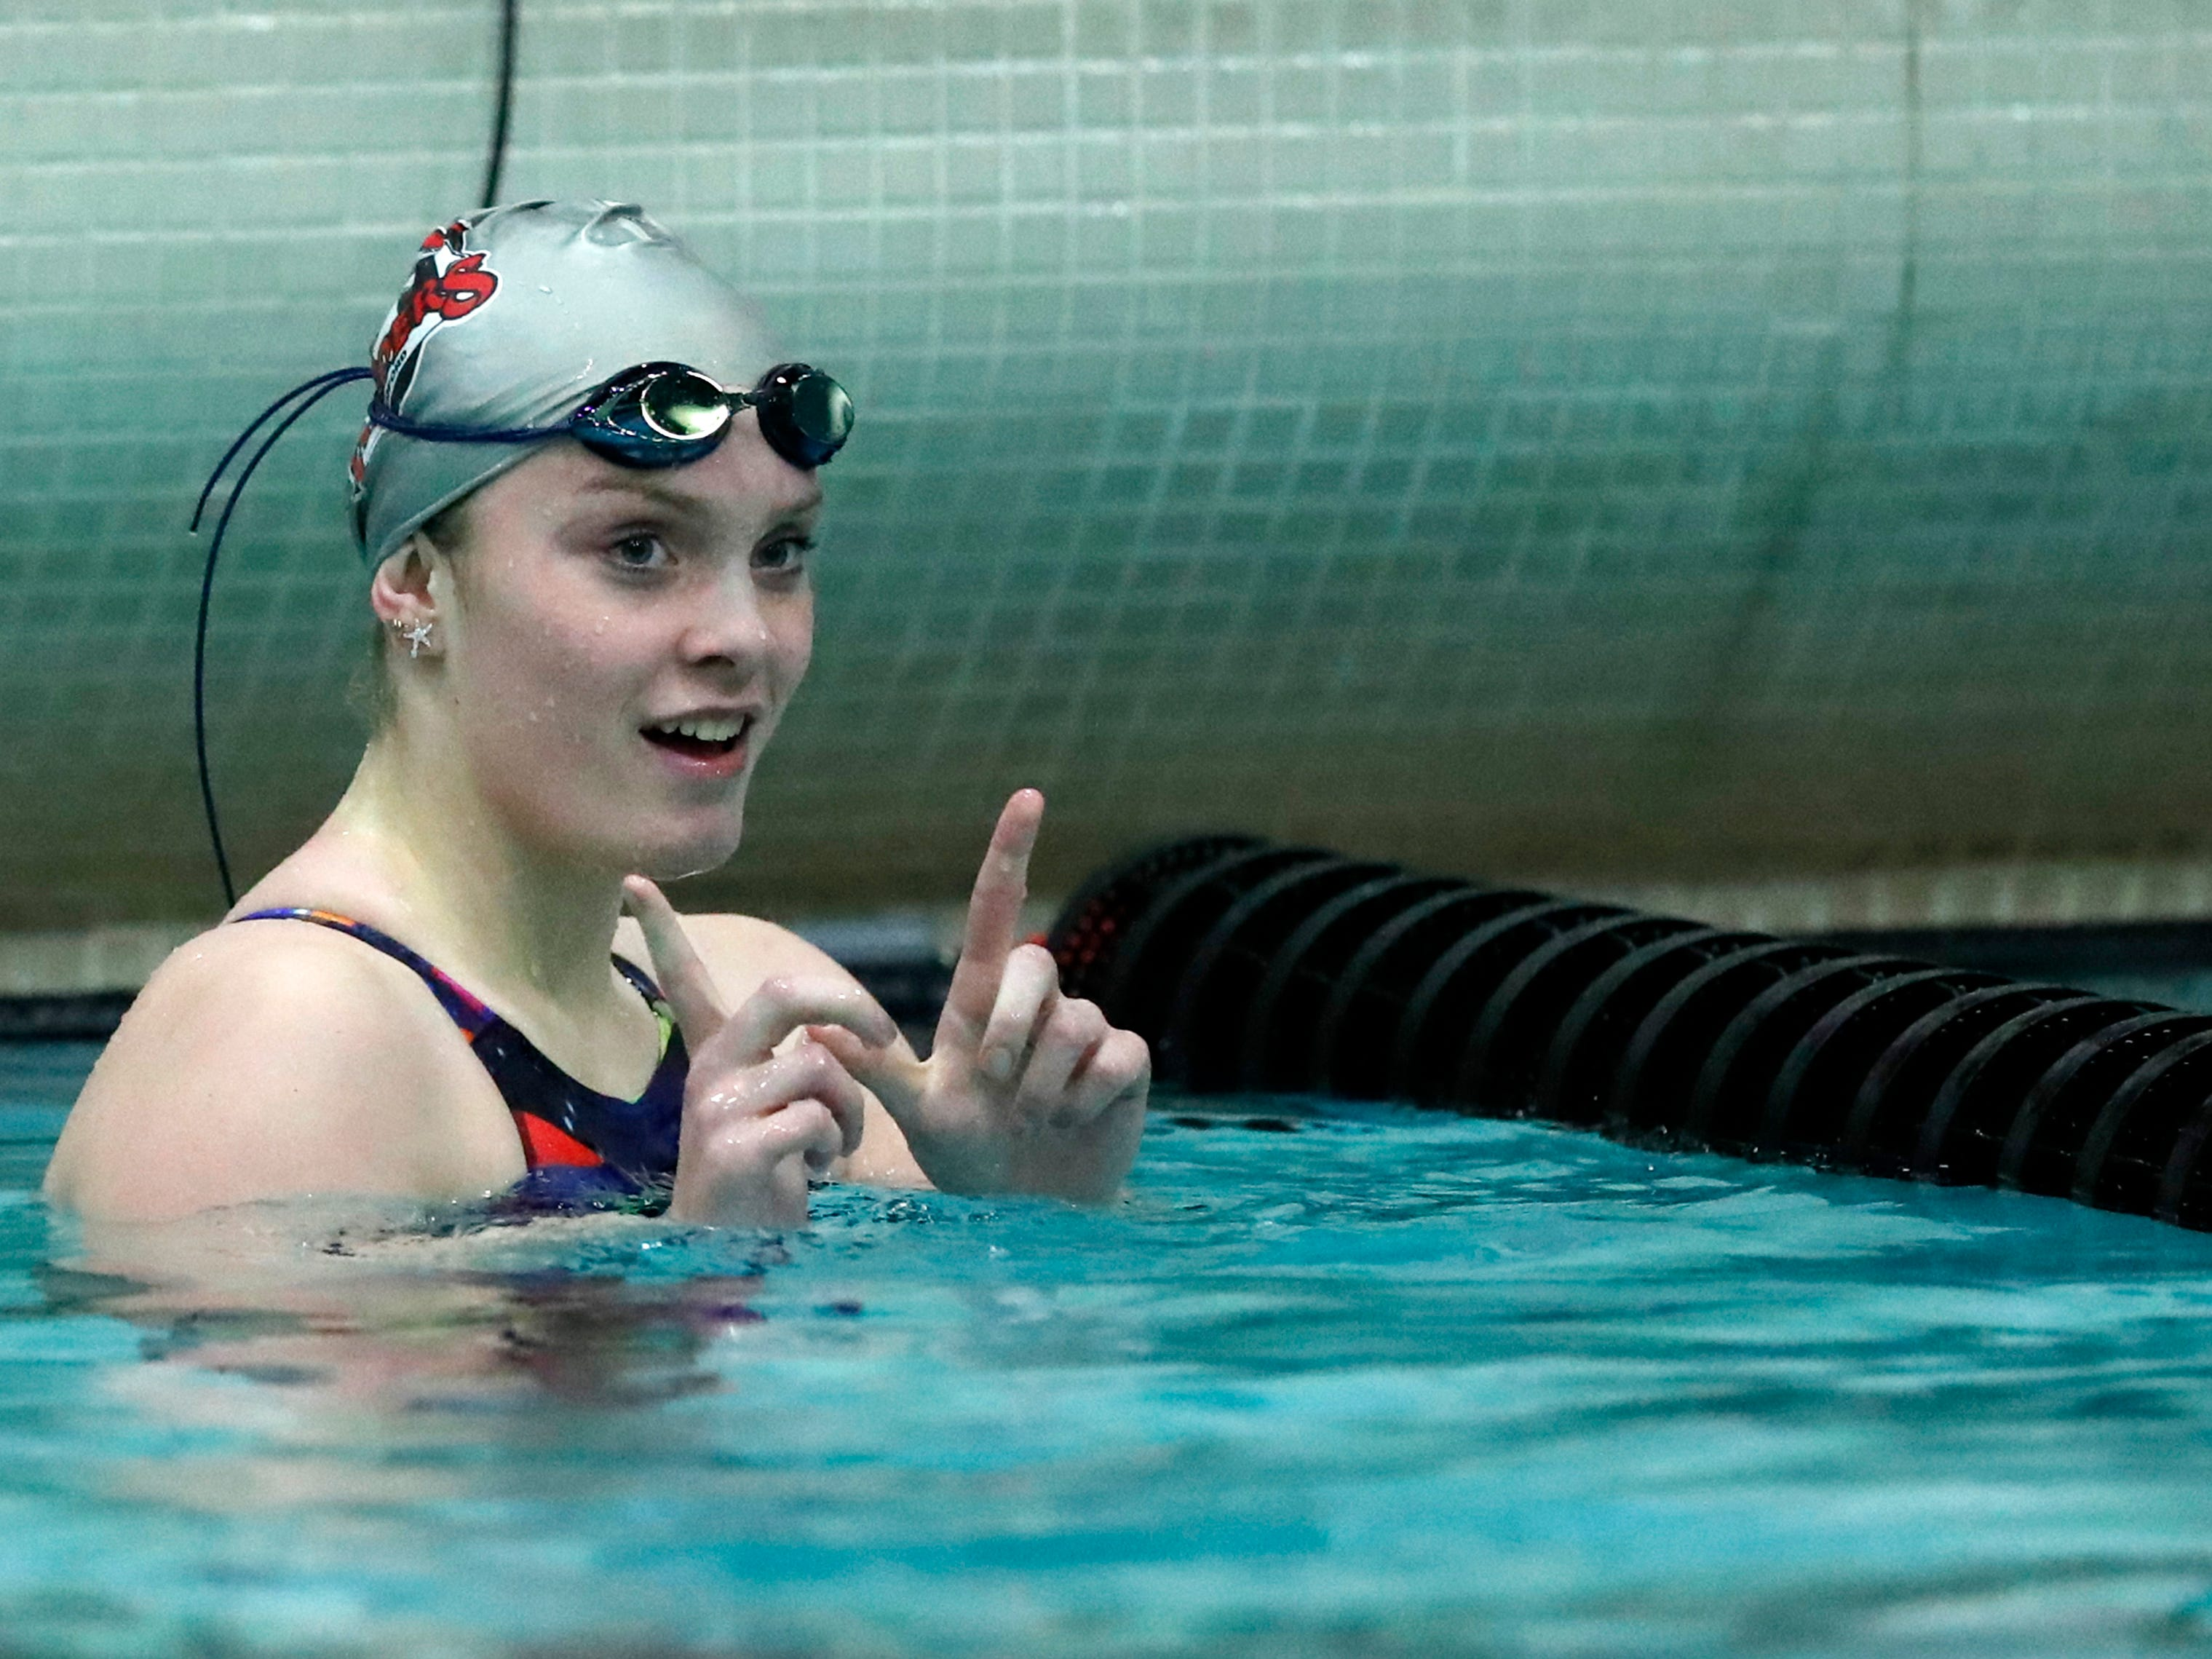 Medford's Erin Bergman signals to her team after finishing the 200 yard freestyle during the WIAA Division 2 State Swimming and Diving meet Friday, Nov. 9, 2018, at the UW Natatorium in Madison, Wis.